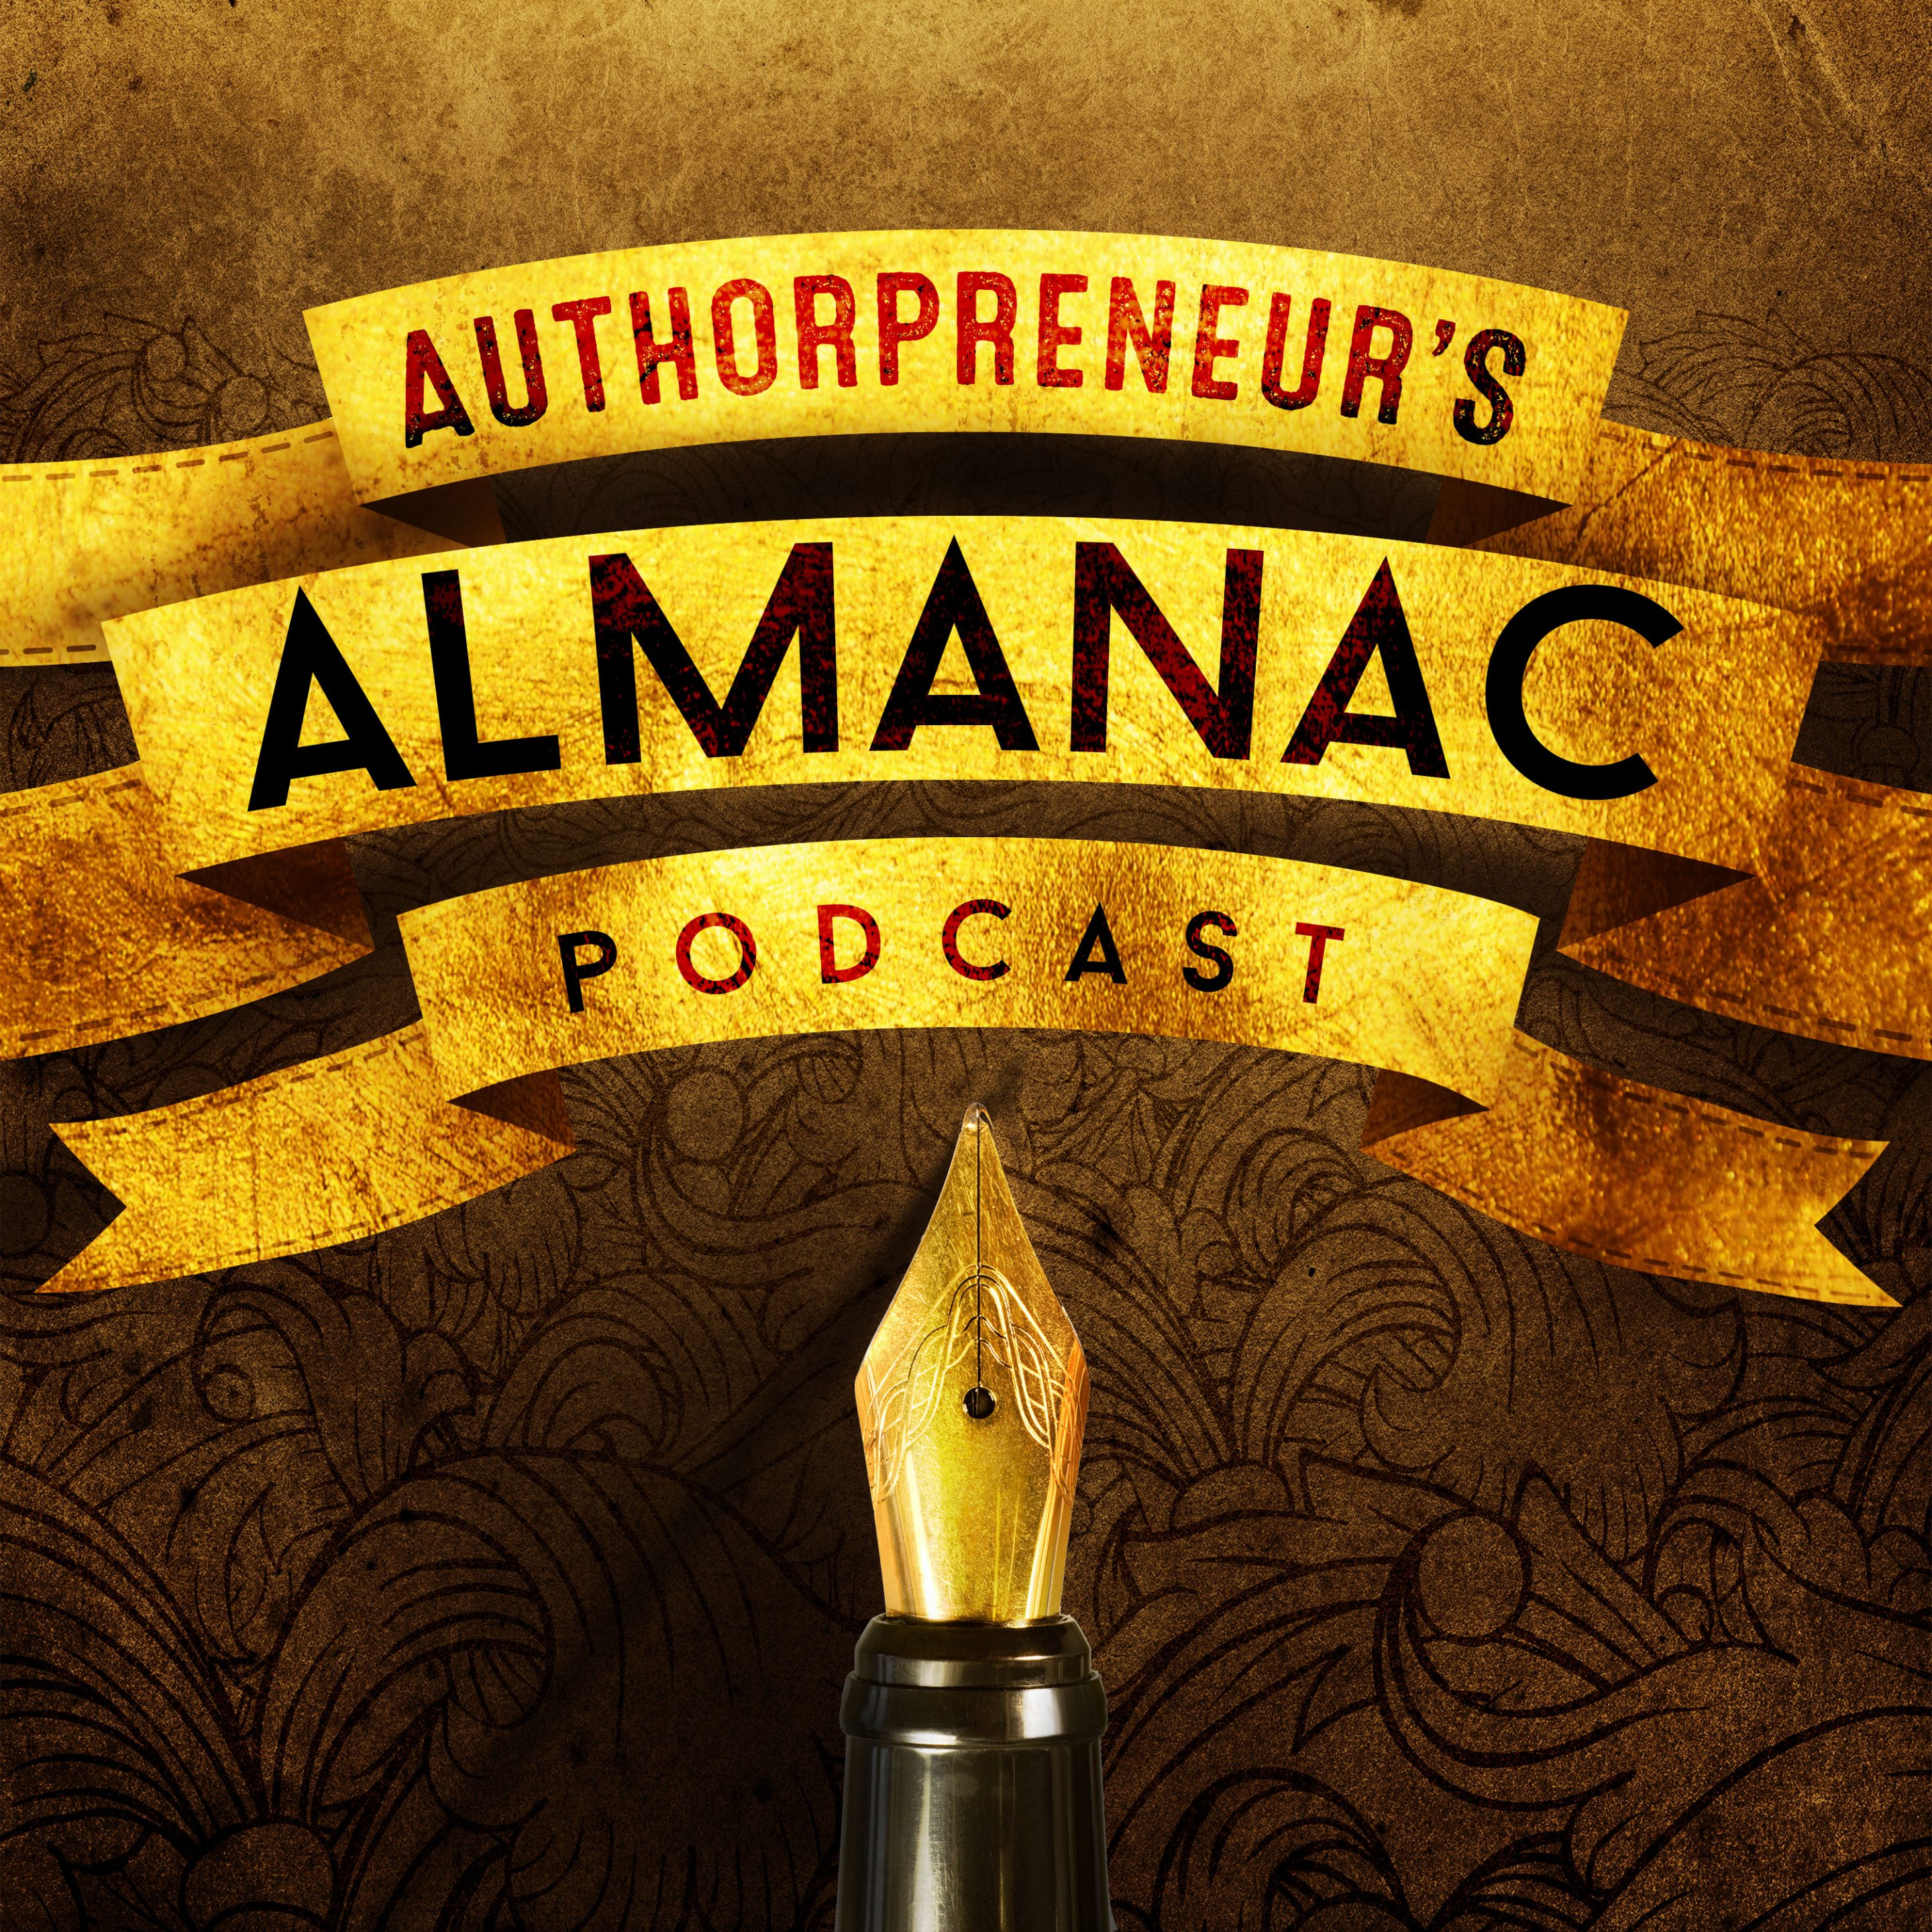 Authorpreneurs Almanac